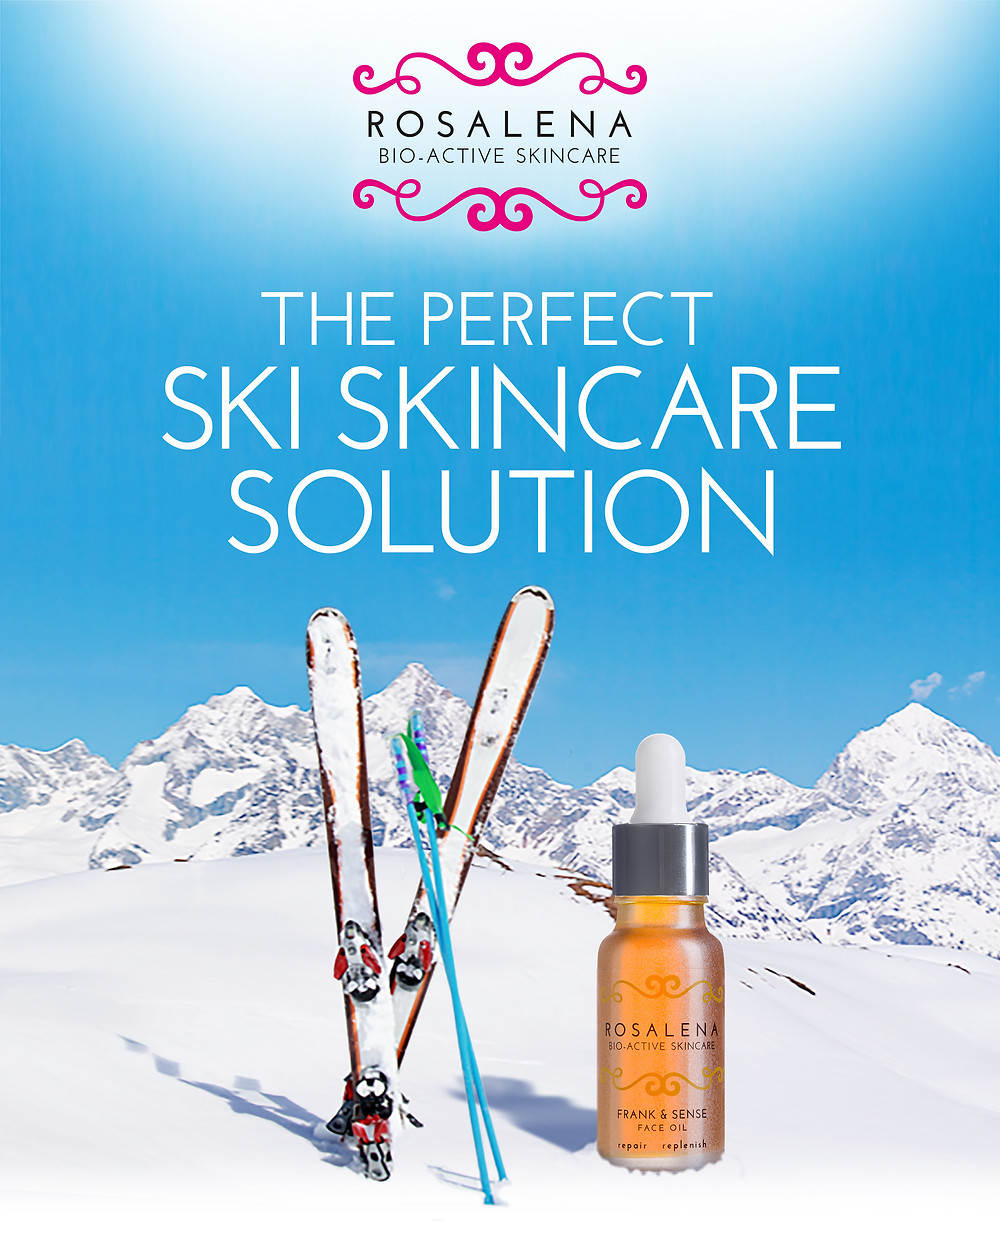 Ski season skincare solutions